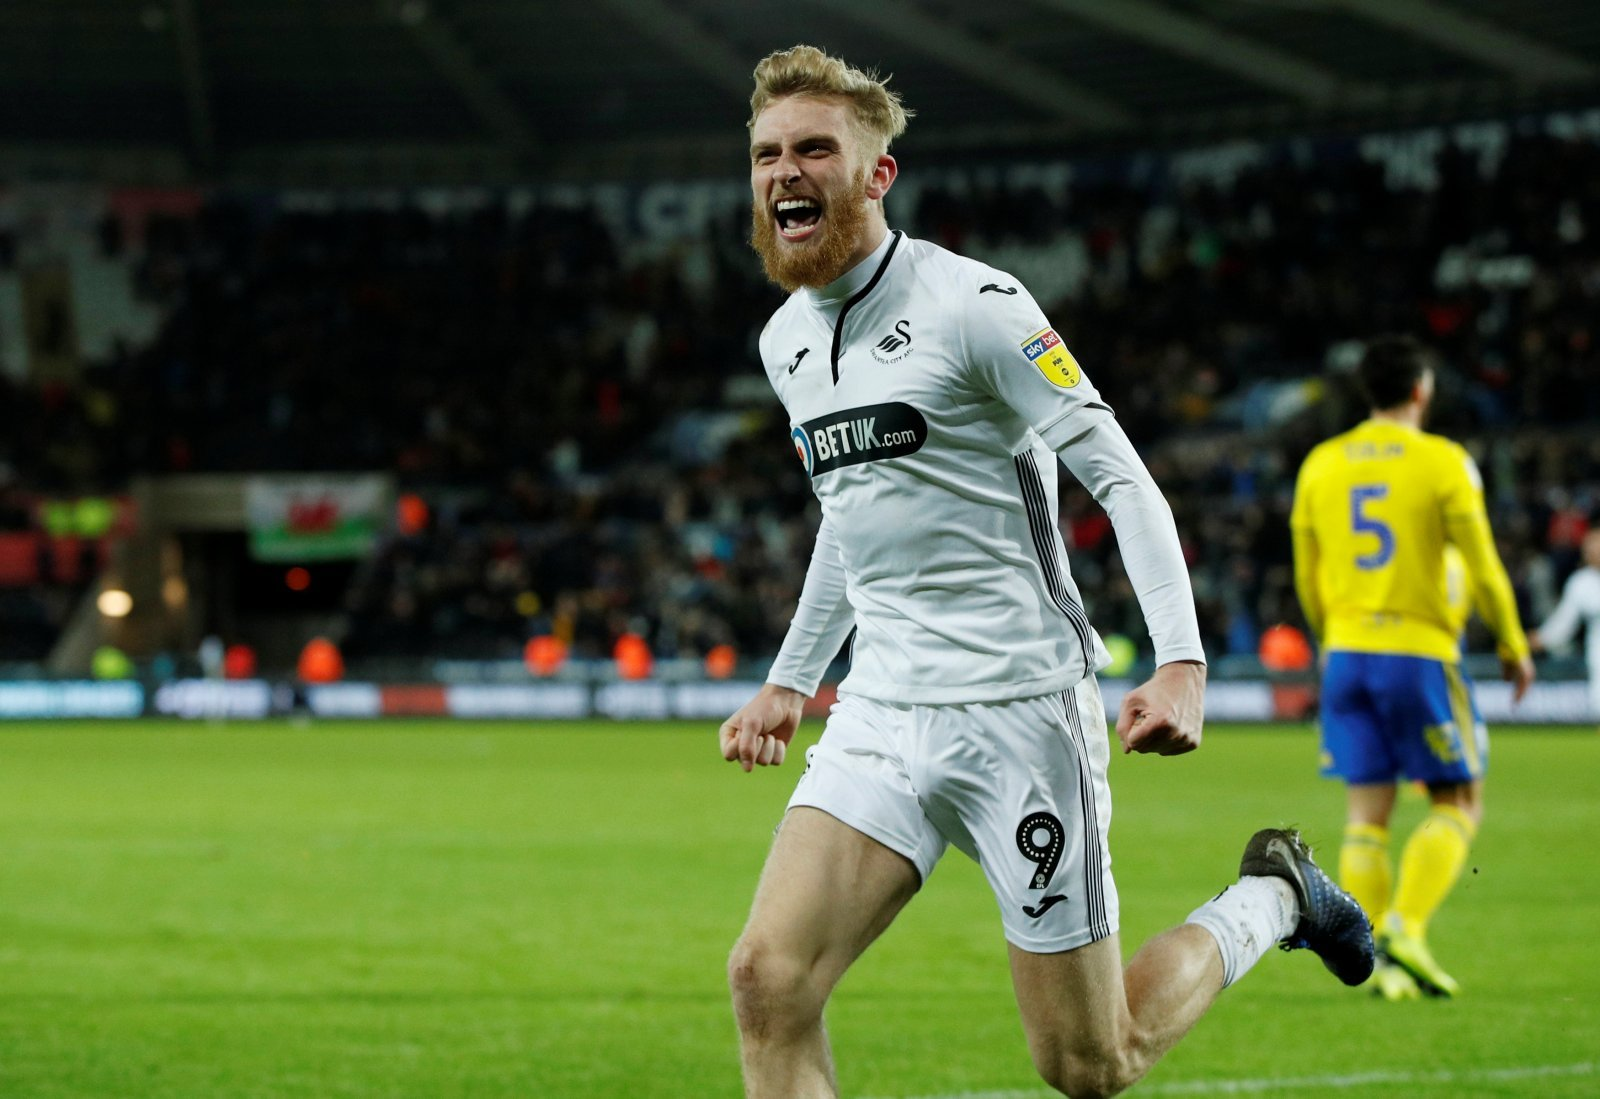 Sheffield United: McBurnie gets lambasted by former Scotland international